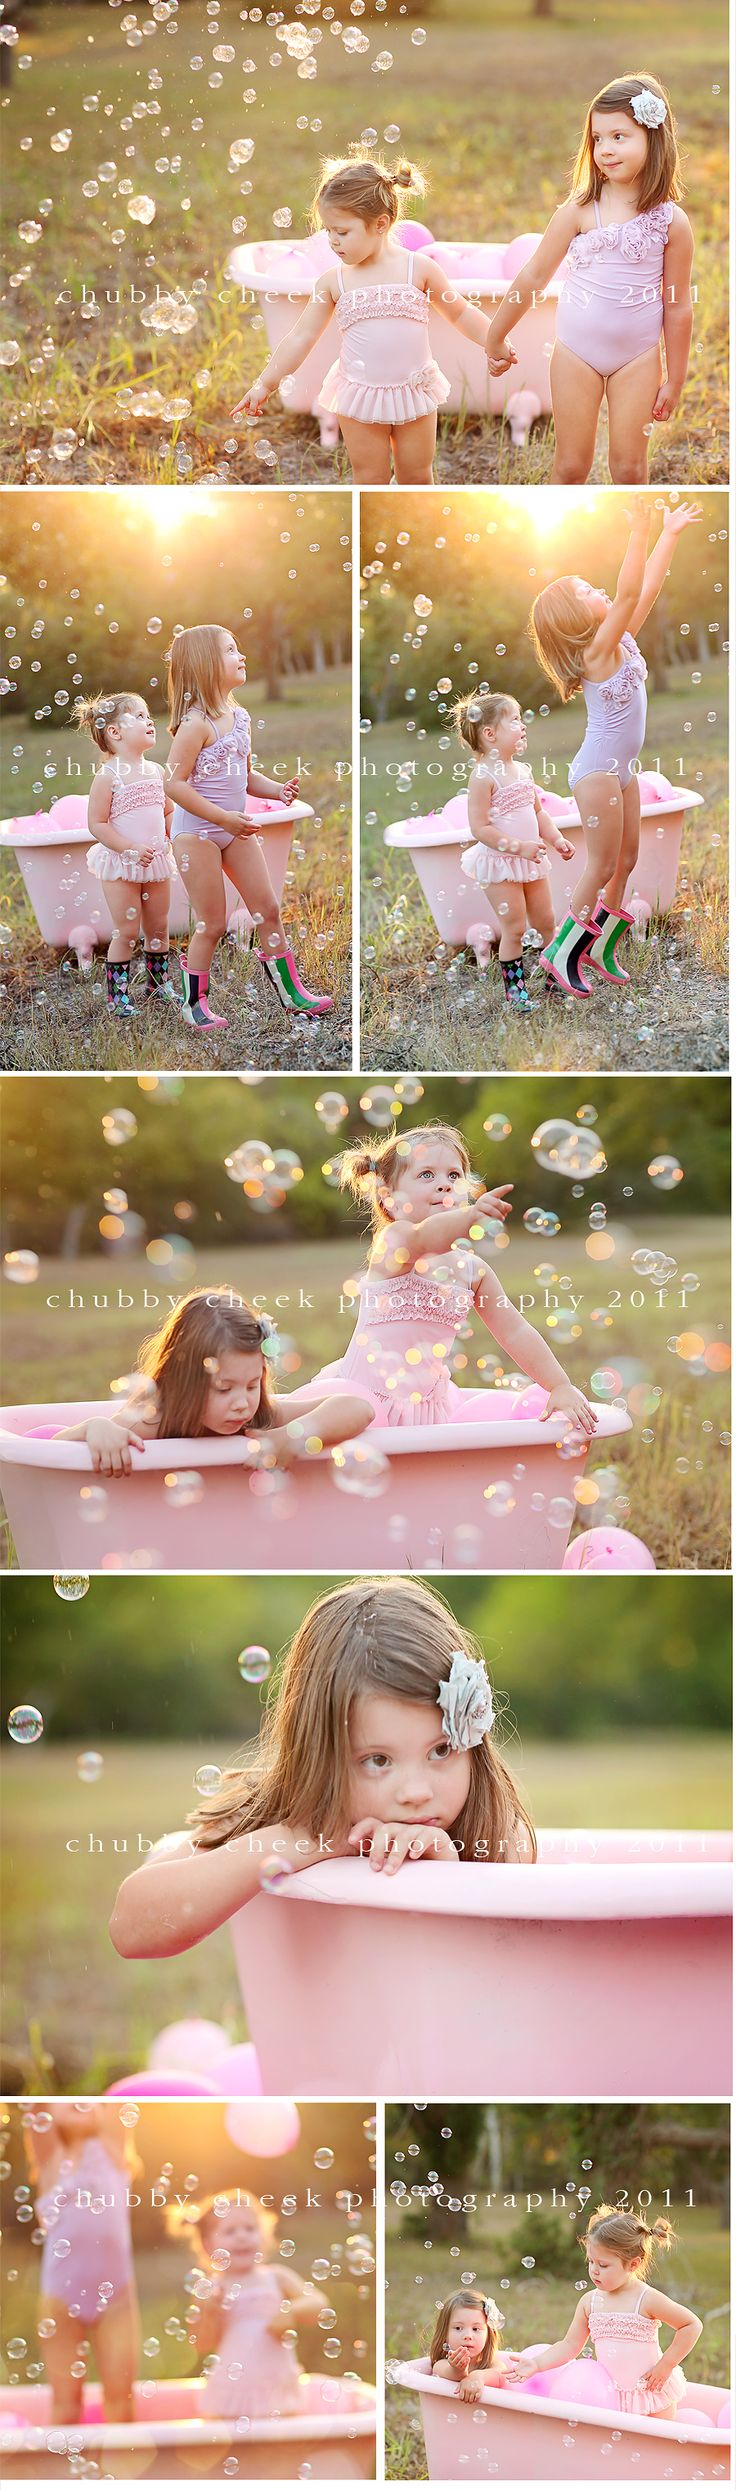 beautiful sunlight, bubbles and a pink tub....I absolutely love this!